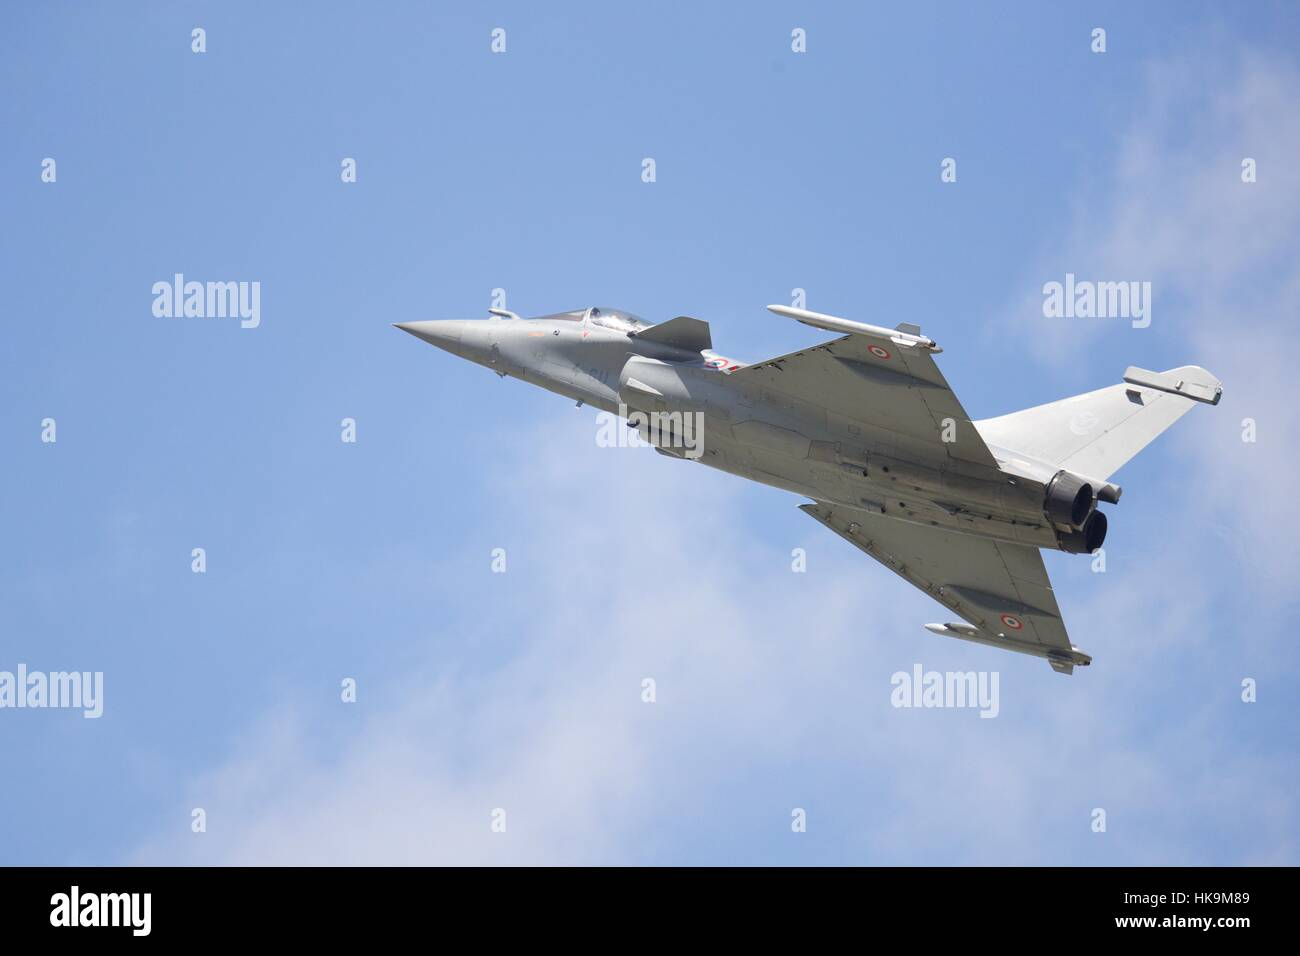 French Air Force Dassault Rafale - Stock Image